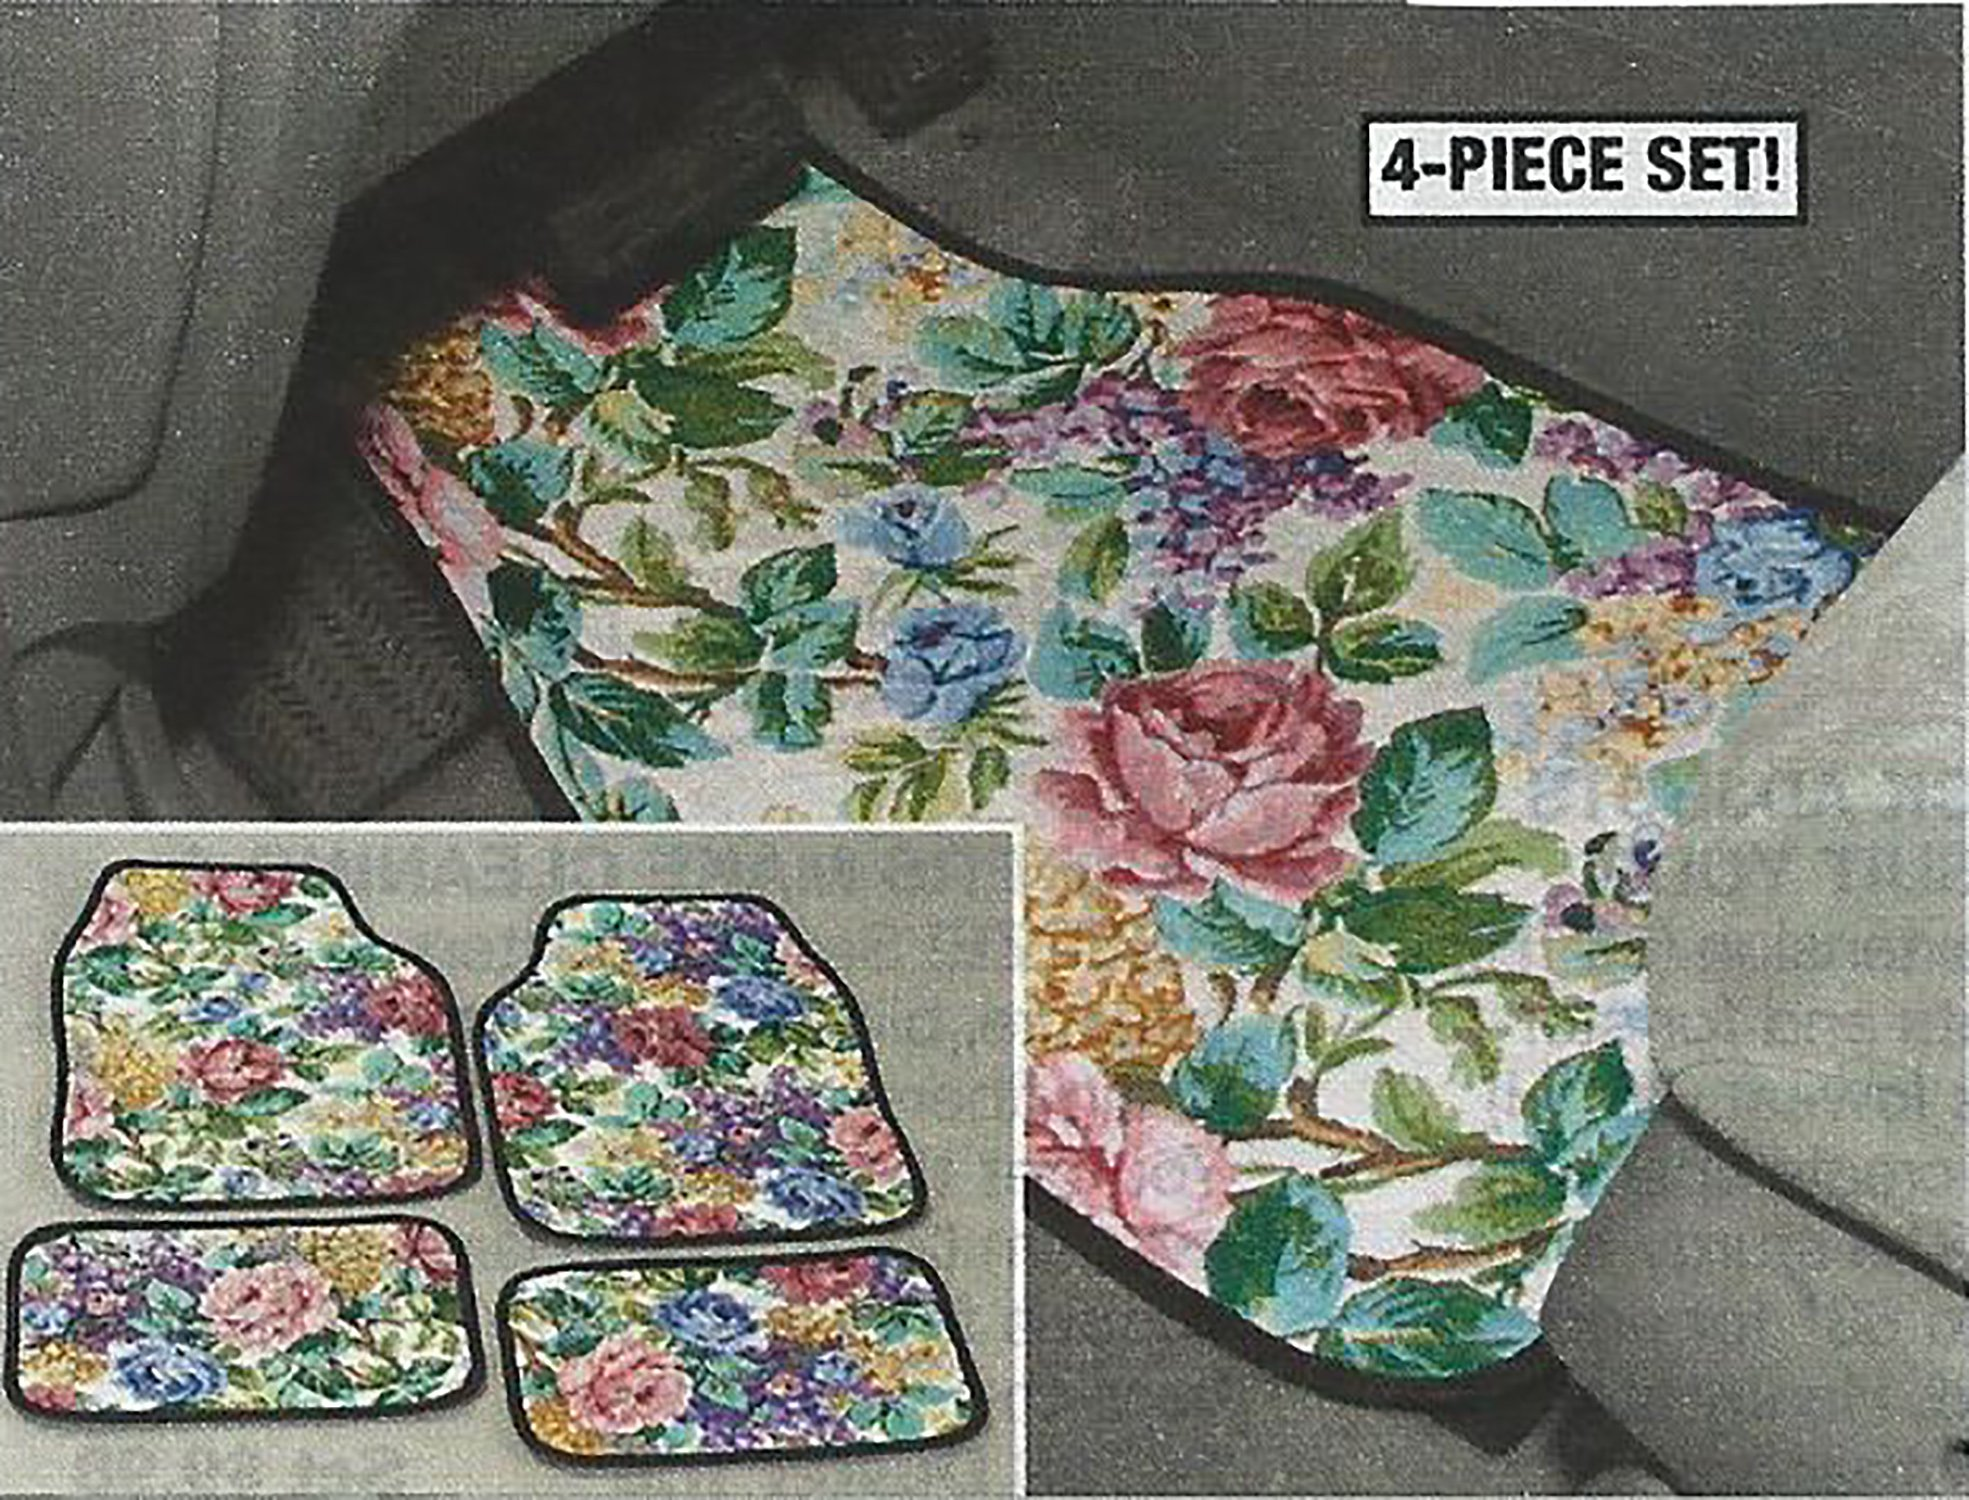 Floral Front & Rear Car Floor Mats - Set Of 4 Flower by Car Mats (Image #1)